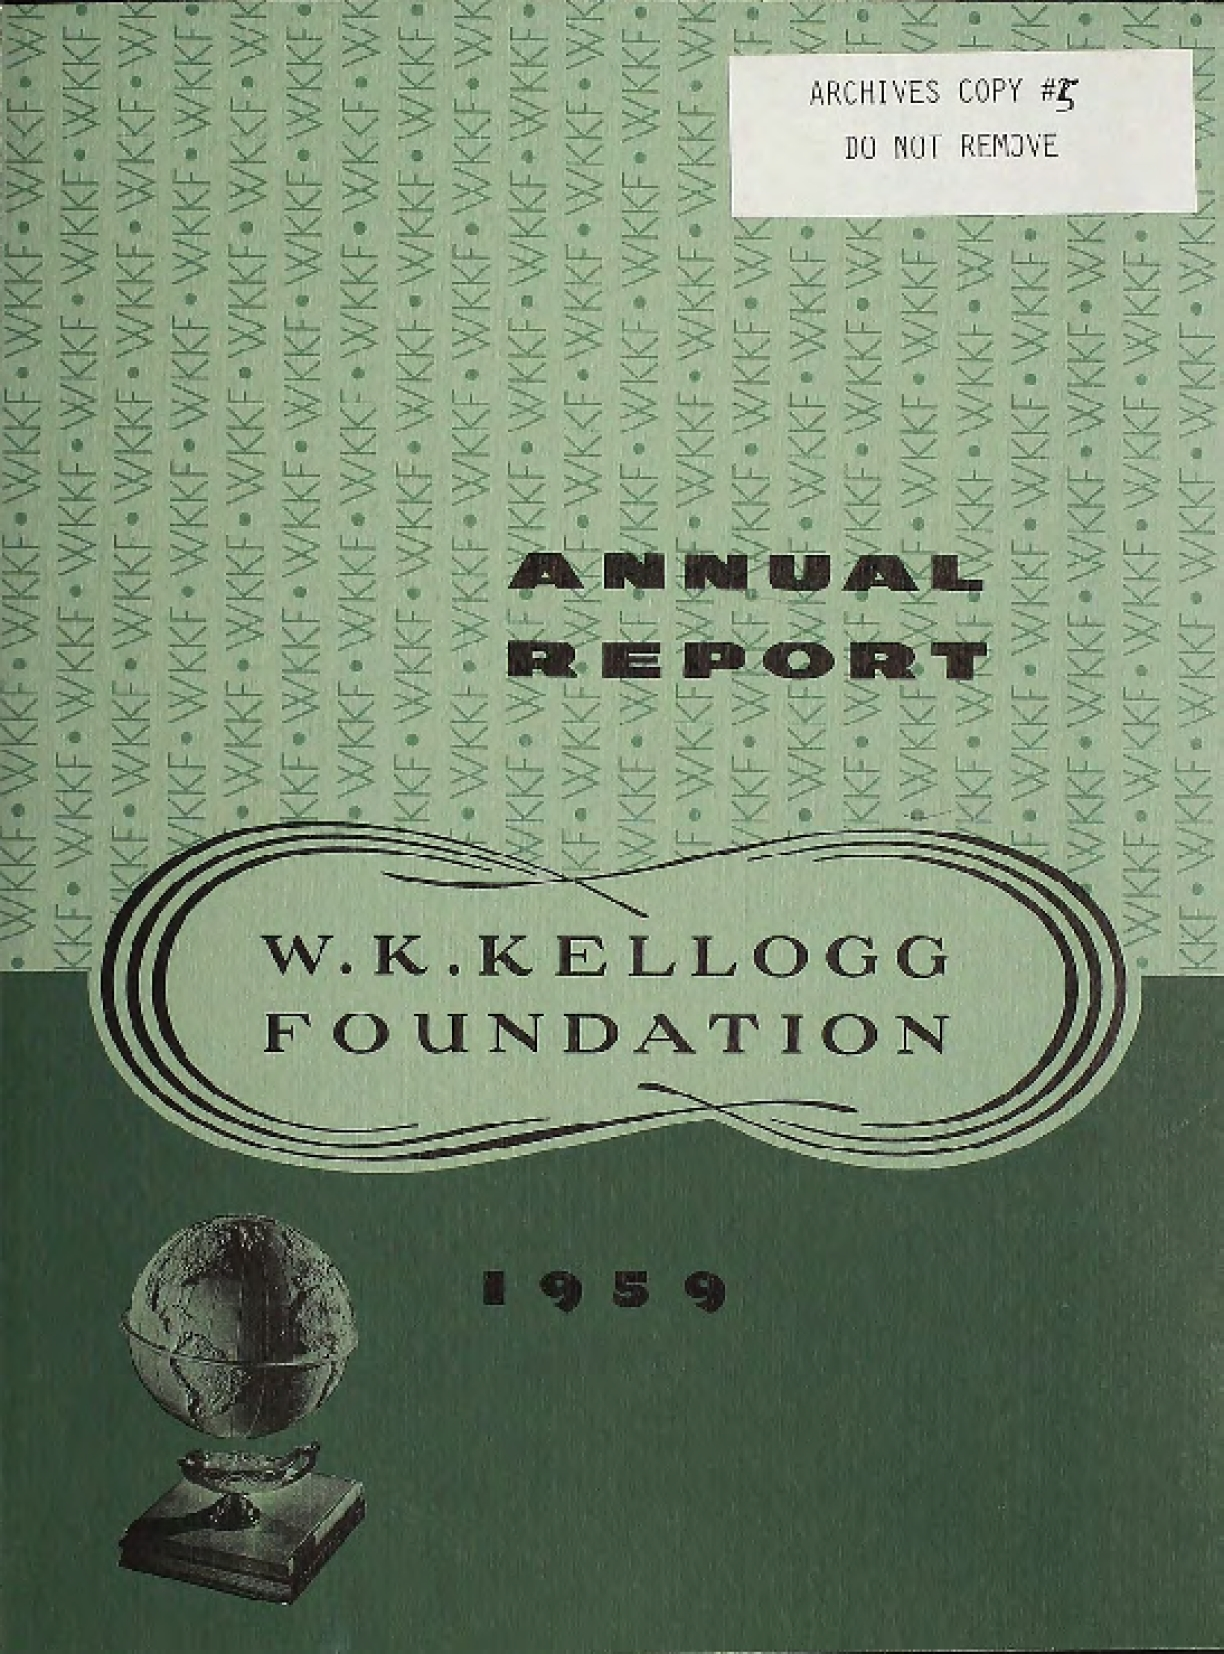 1959 W.K. Kellogg Foundation Annual Report